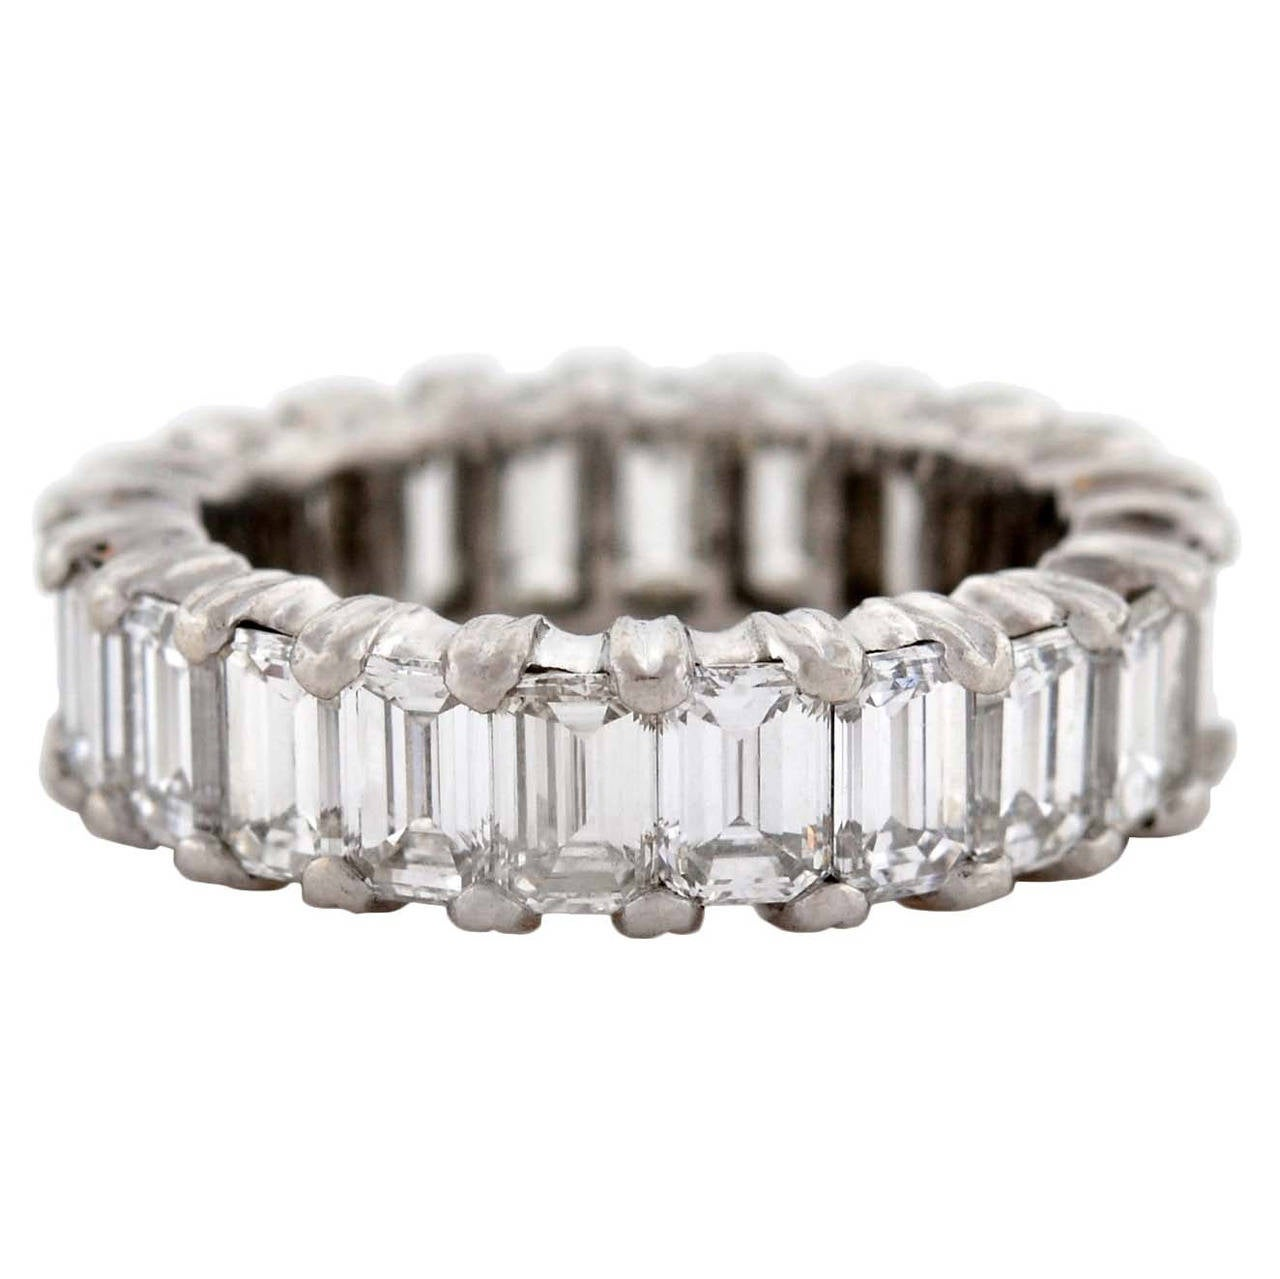 Contemporary Emerald Cut Diamond Platinum Eternity Band 6ctw 1